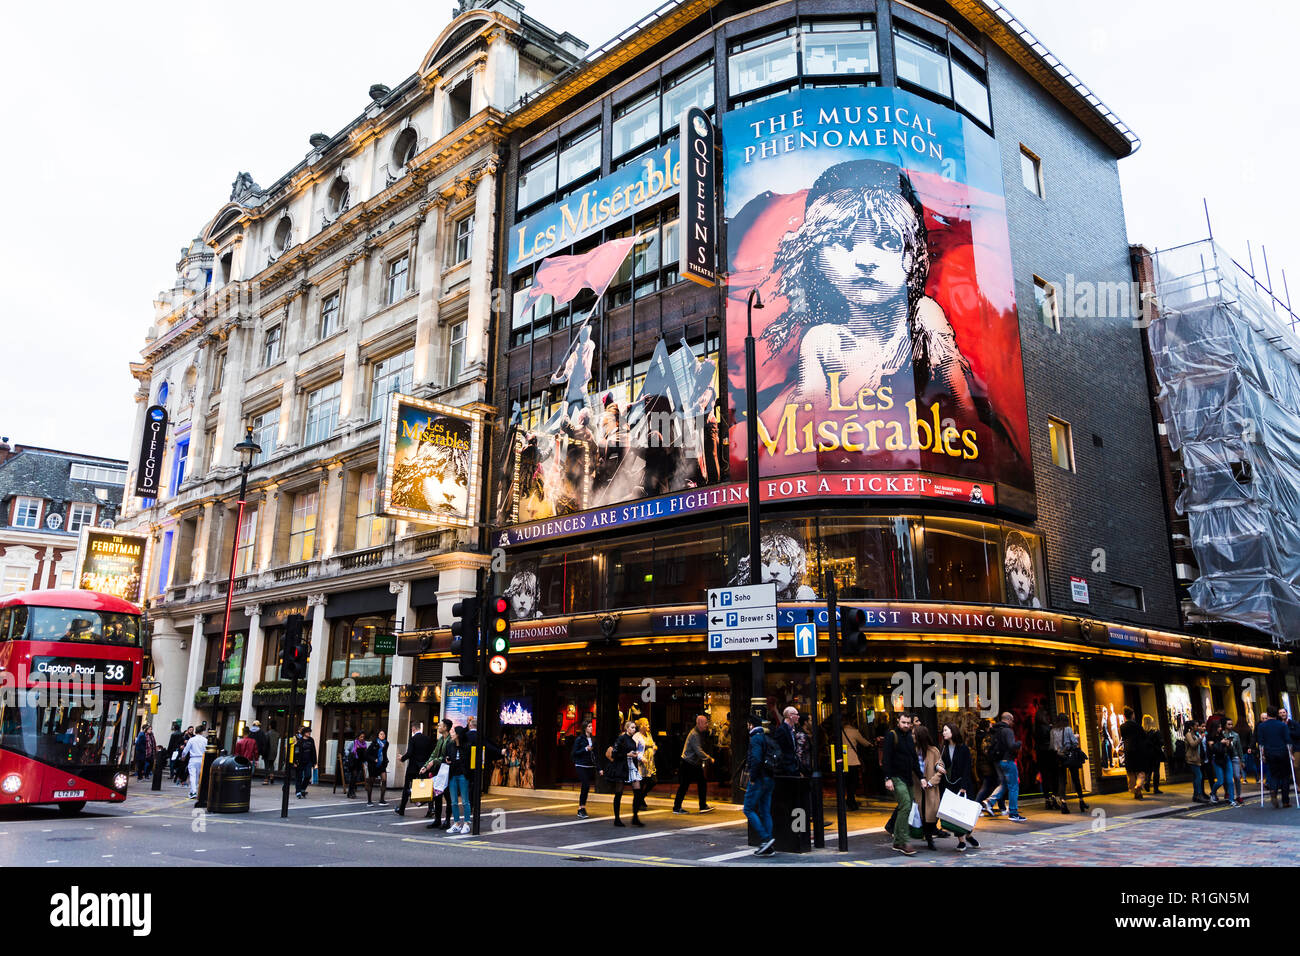 Les Miserables. The Queen's Theatre is a West End theatre located in Shaftesbury Avenue on the corner of Wardour Street in the City of Westminster. Lo - Stock Image